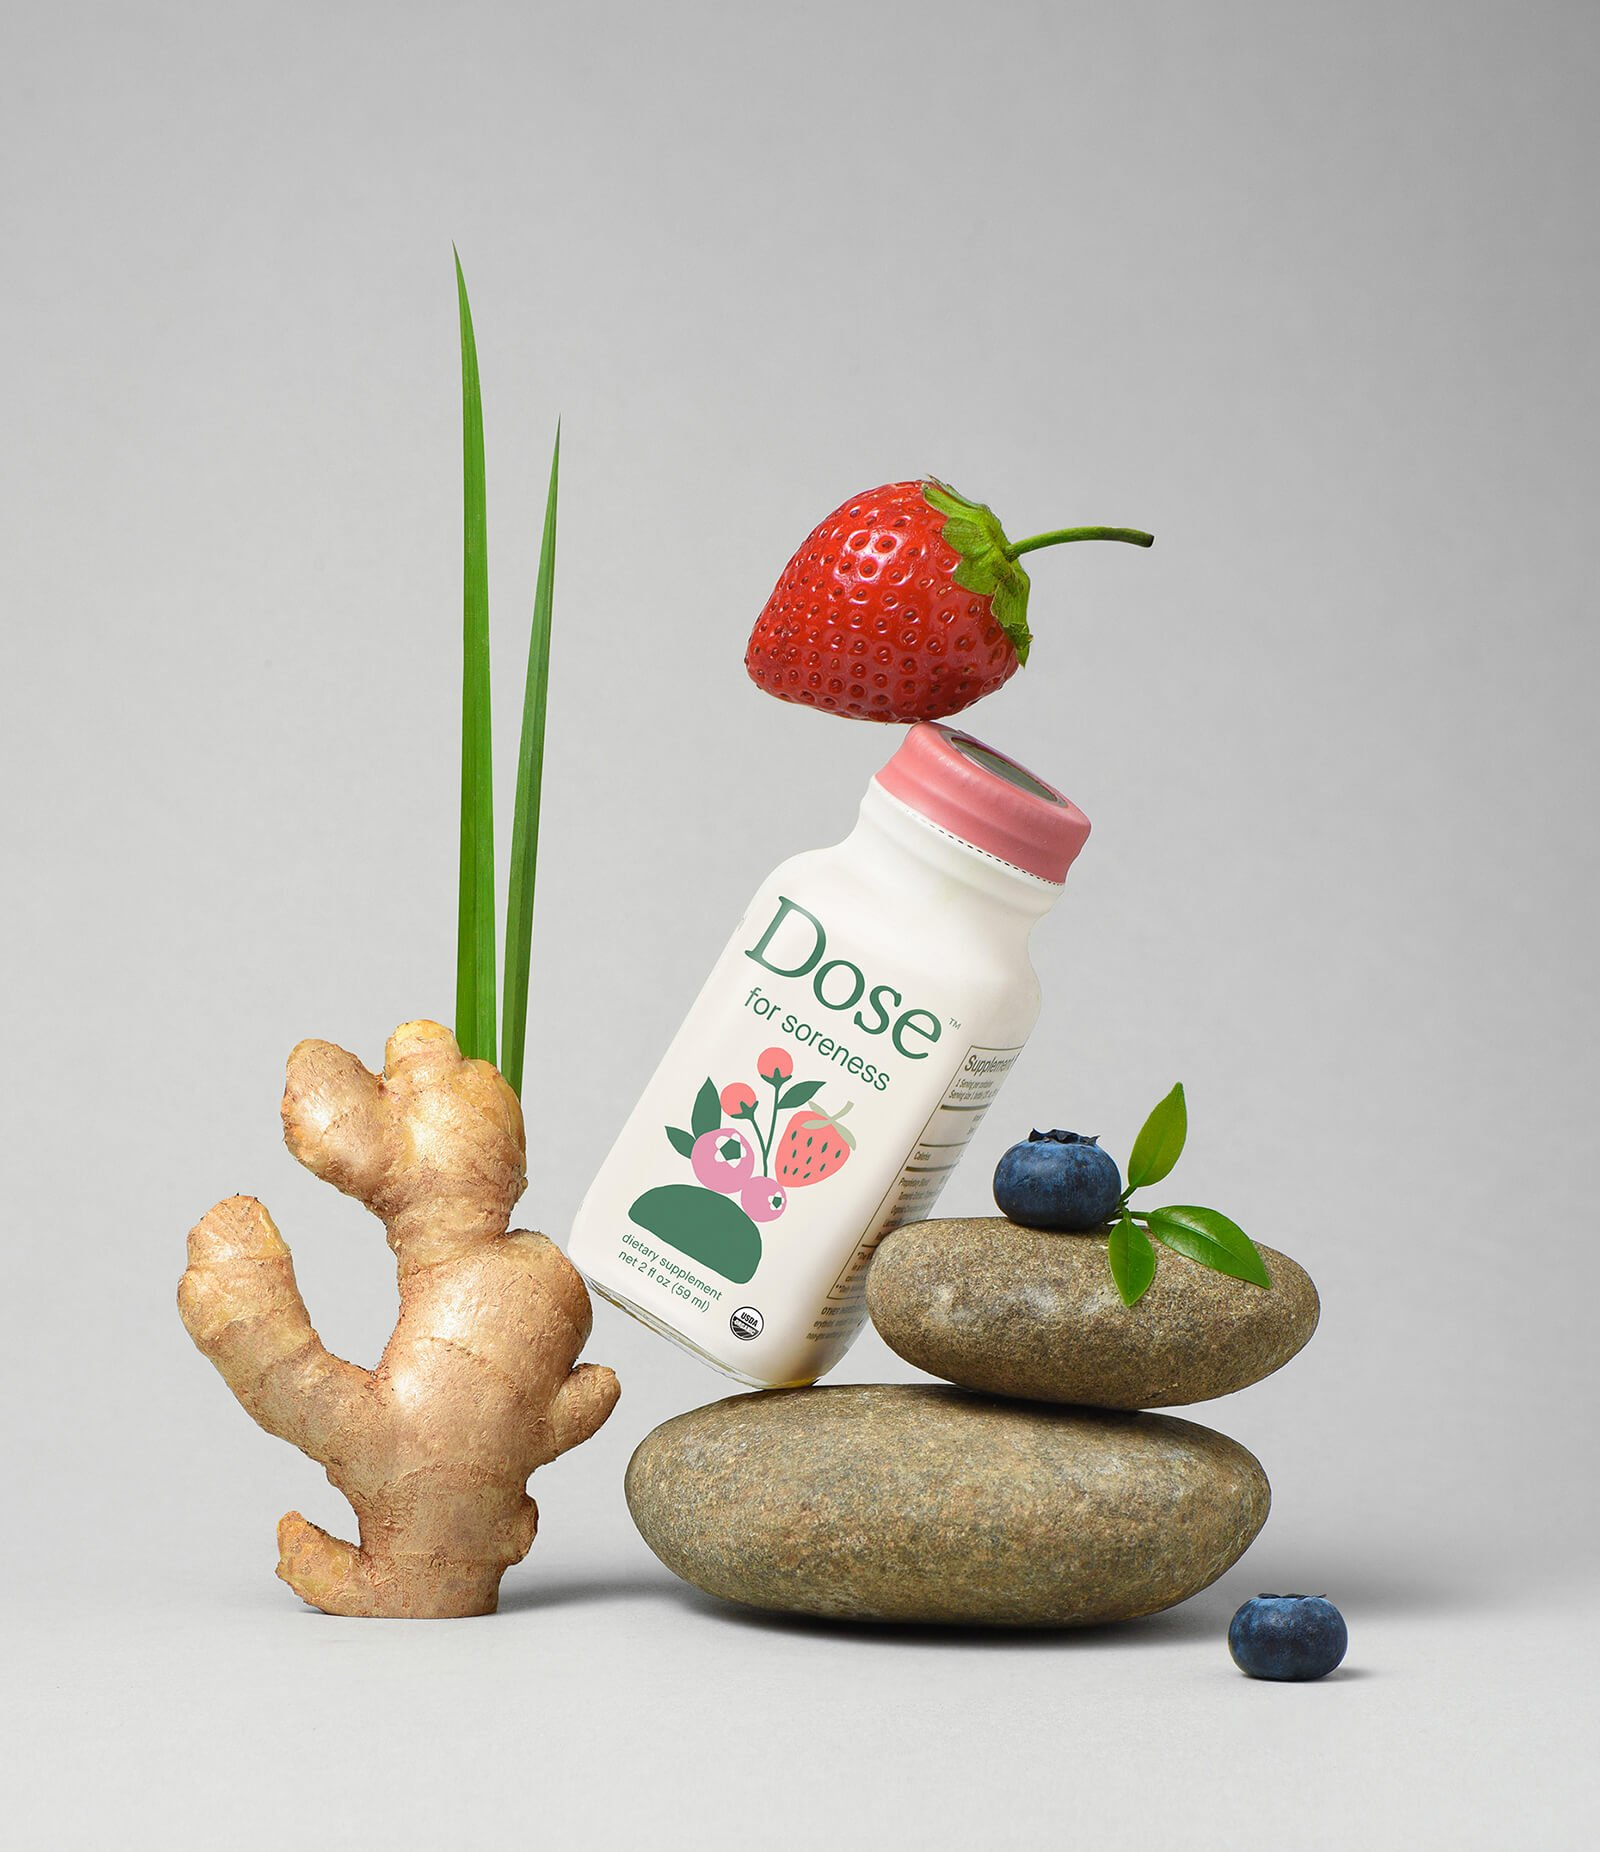 Dose Product Photography